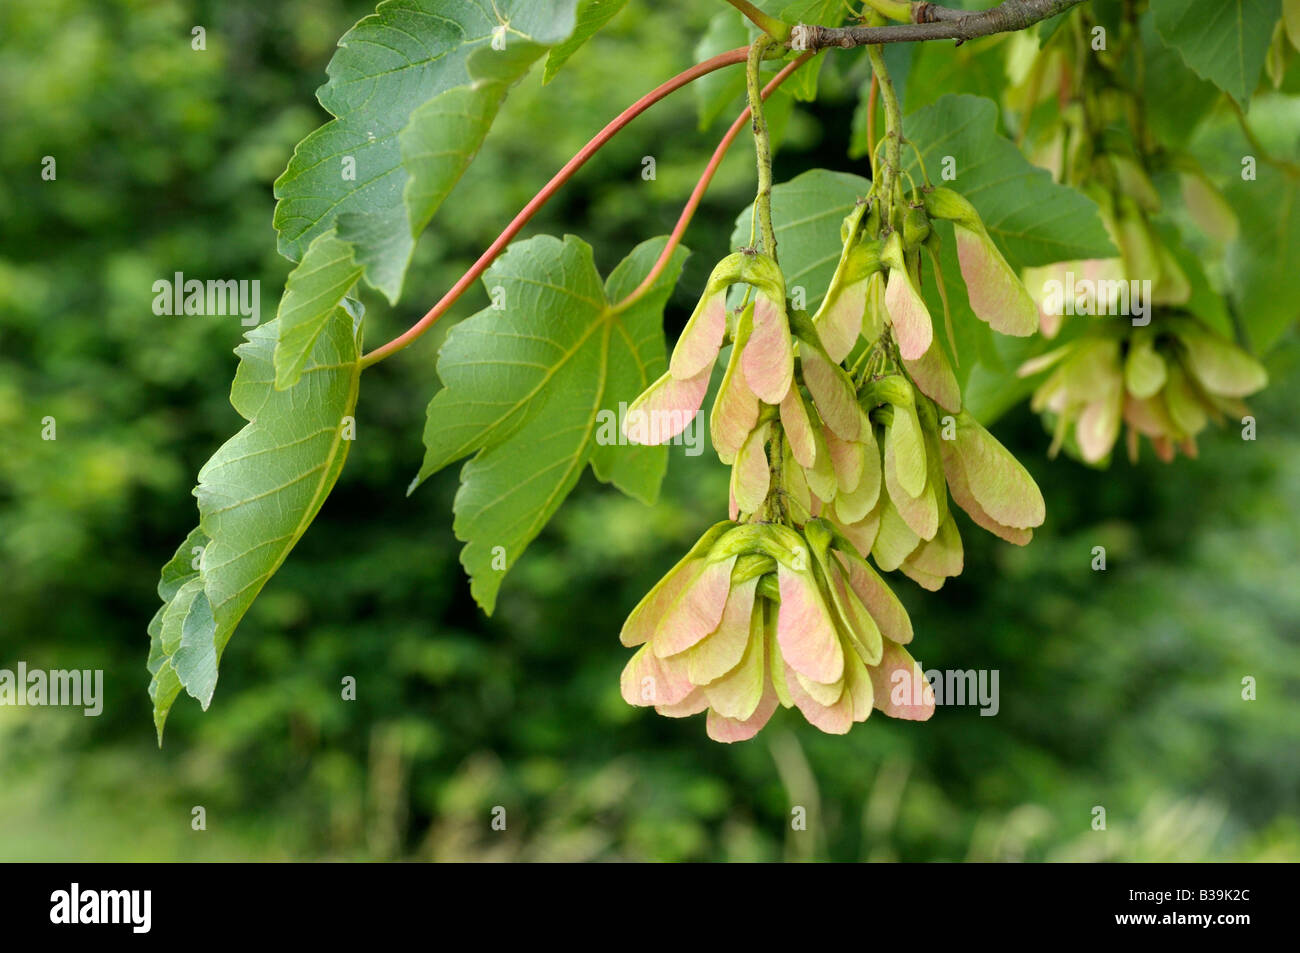 Maple Seed Stock Photos & Maple Seed Stock Images - Alamy